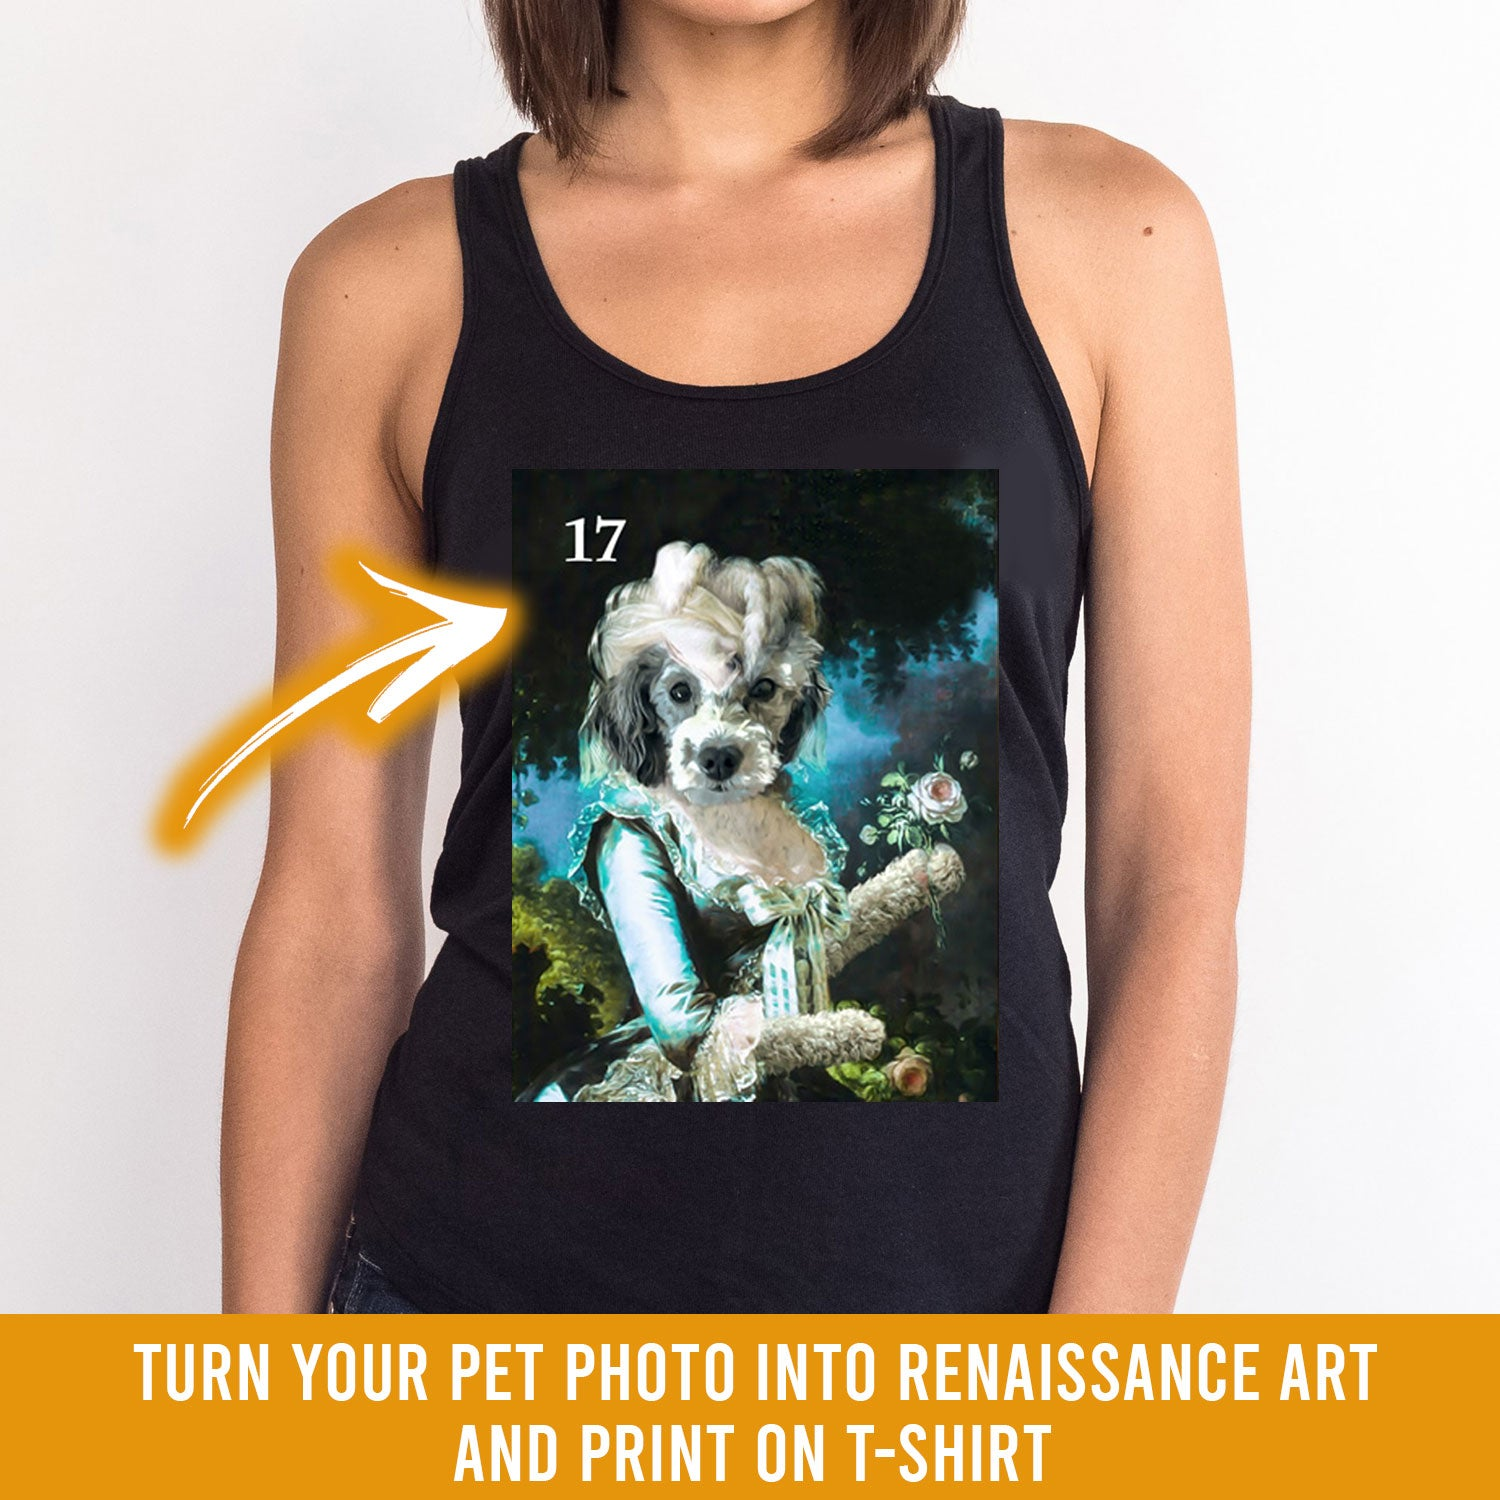 Renaissance historical F-17 female pet portrait